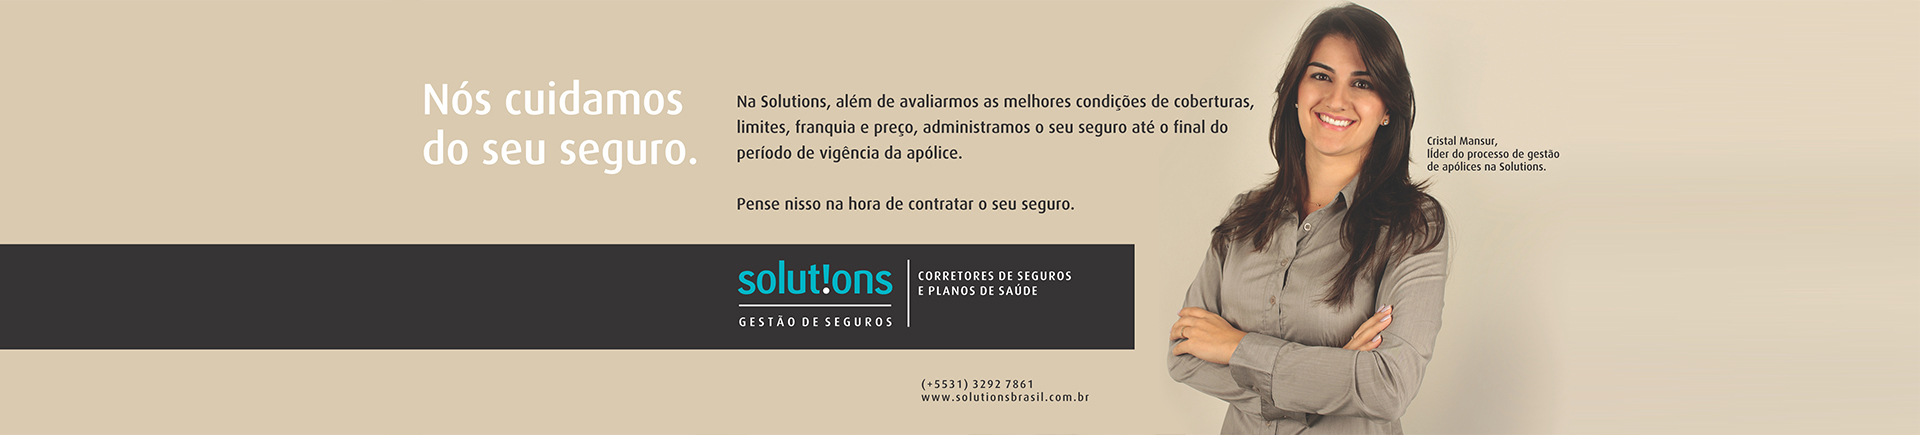 banner_solutions1